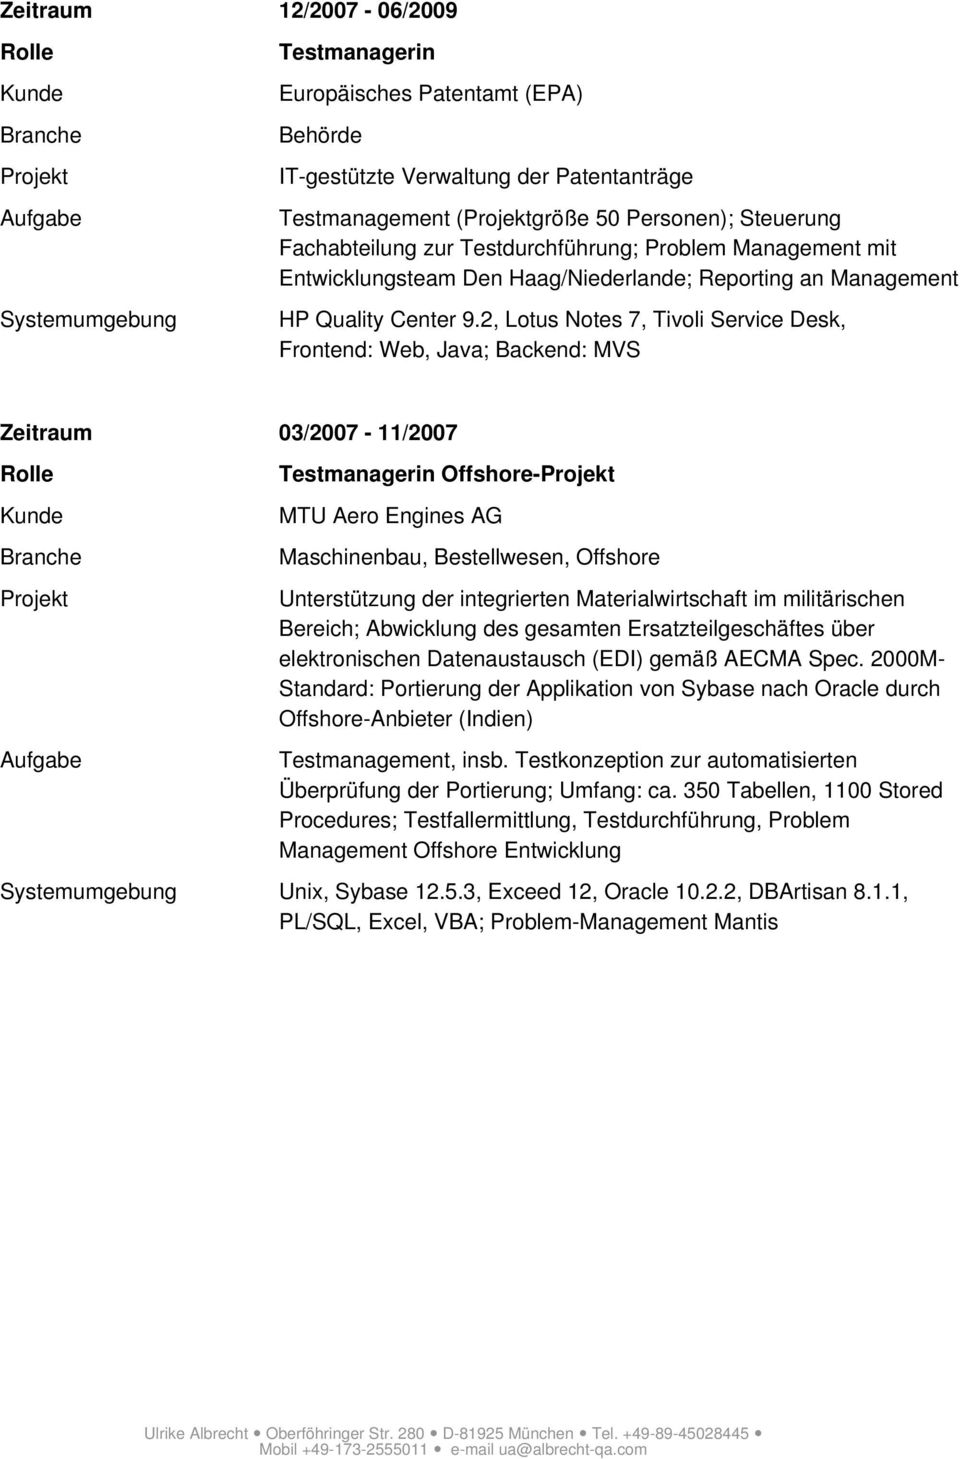 2, Lotus Notes 7, Tivoli Service Desk, Frontend: Web, Java; Backend: MVS Zeitraum 03/2007-11/2007 Offshore- MTU Aero Engines AG Maschinenbau, Bestellwesen, Offshore Unterstützung der integrierten